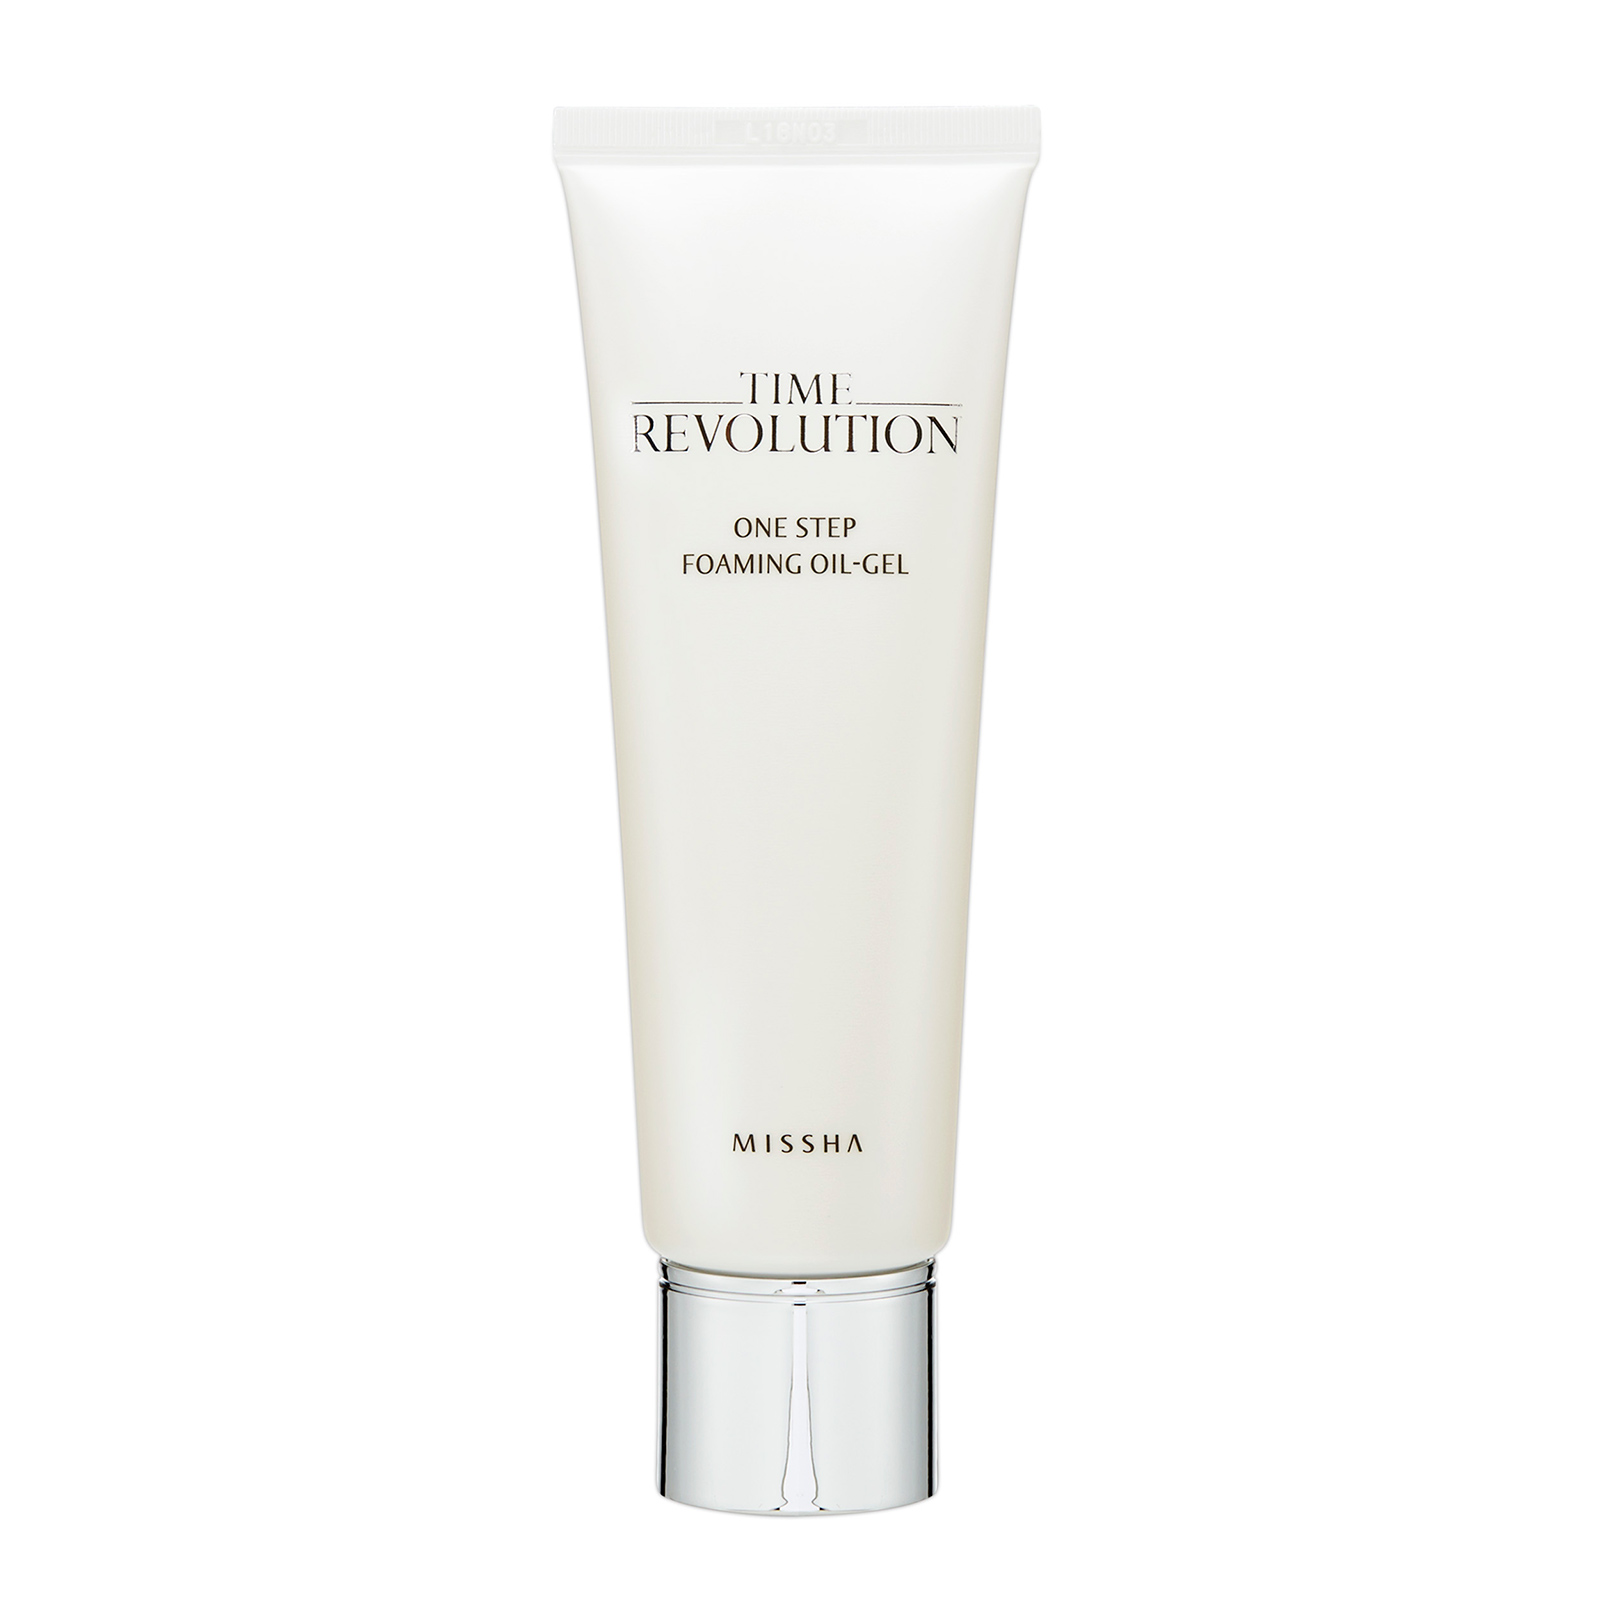 Missha Time Revolution  One Step Foaming Oil-Gel 125ml, from Cosme-De.com